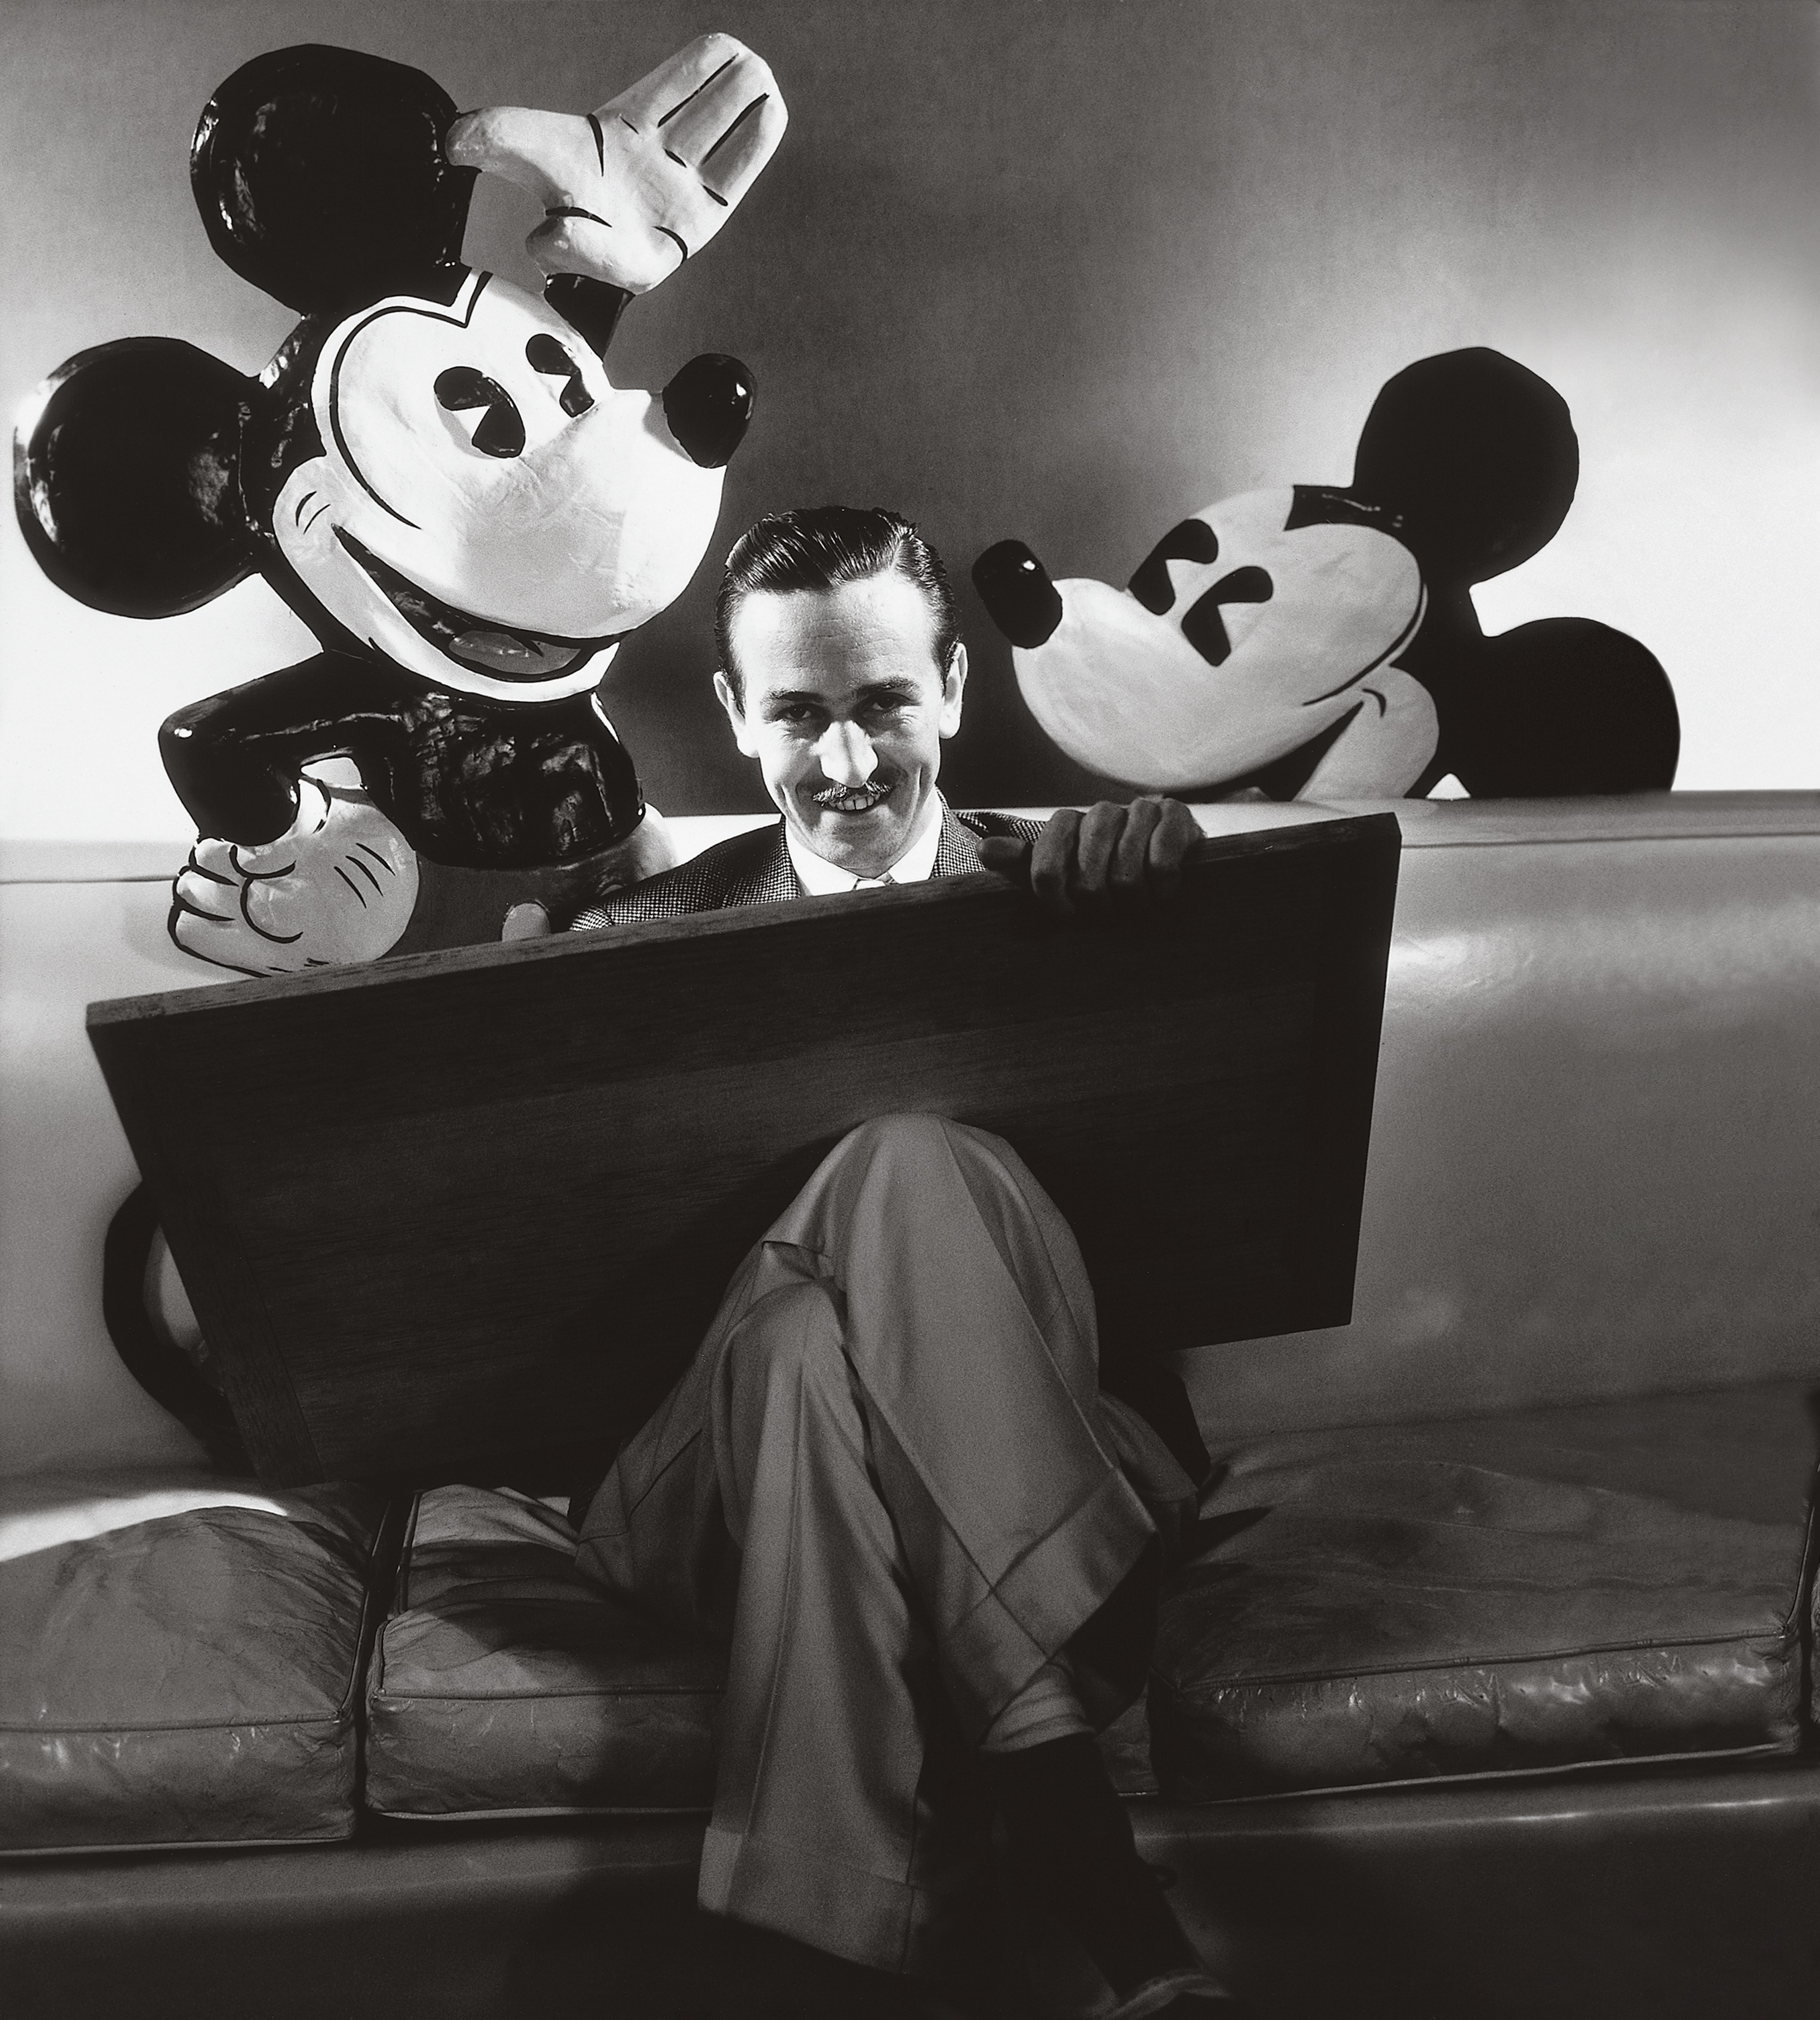 a biography of walt disney the american cartoonist Extract disney, walt (05 december 1901–15 december 1966), animator and motion picture producer, was born walter elias disney in chicago, illinois, the son of elias disney, a building contractor, and flora call, a teacher.